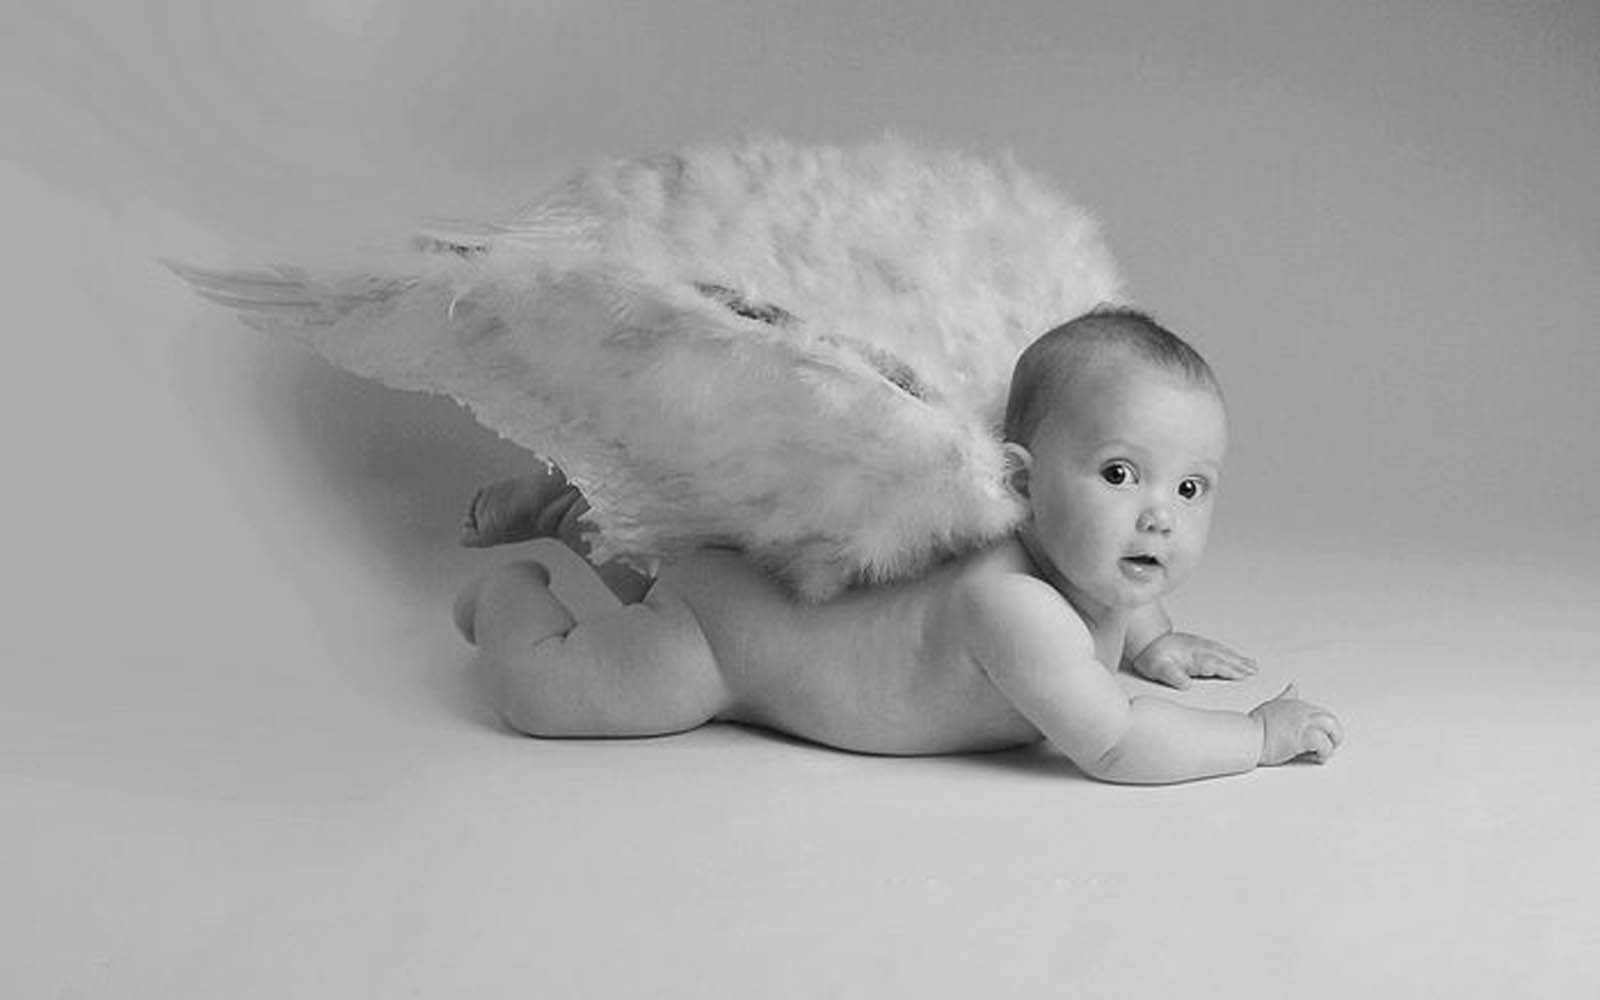 Wallpapers: Babies Black And White Wallpapers